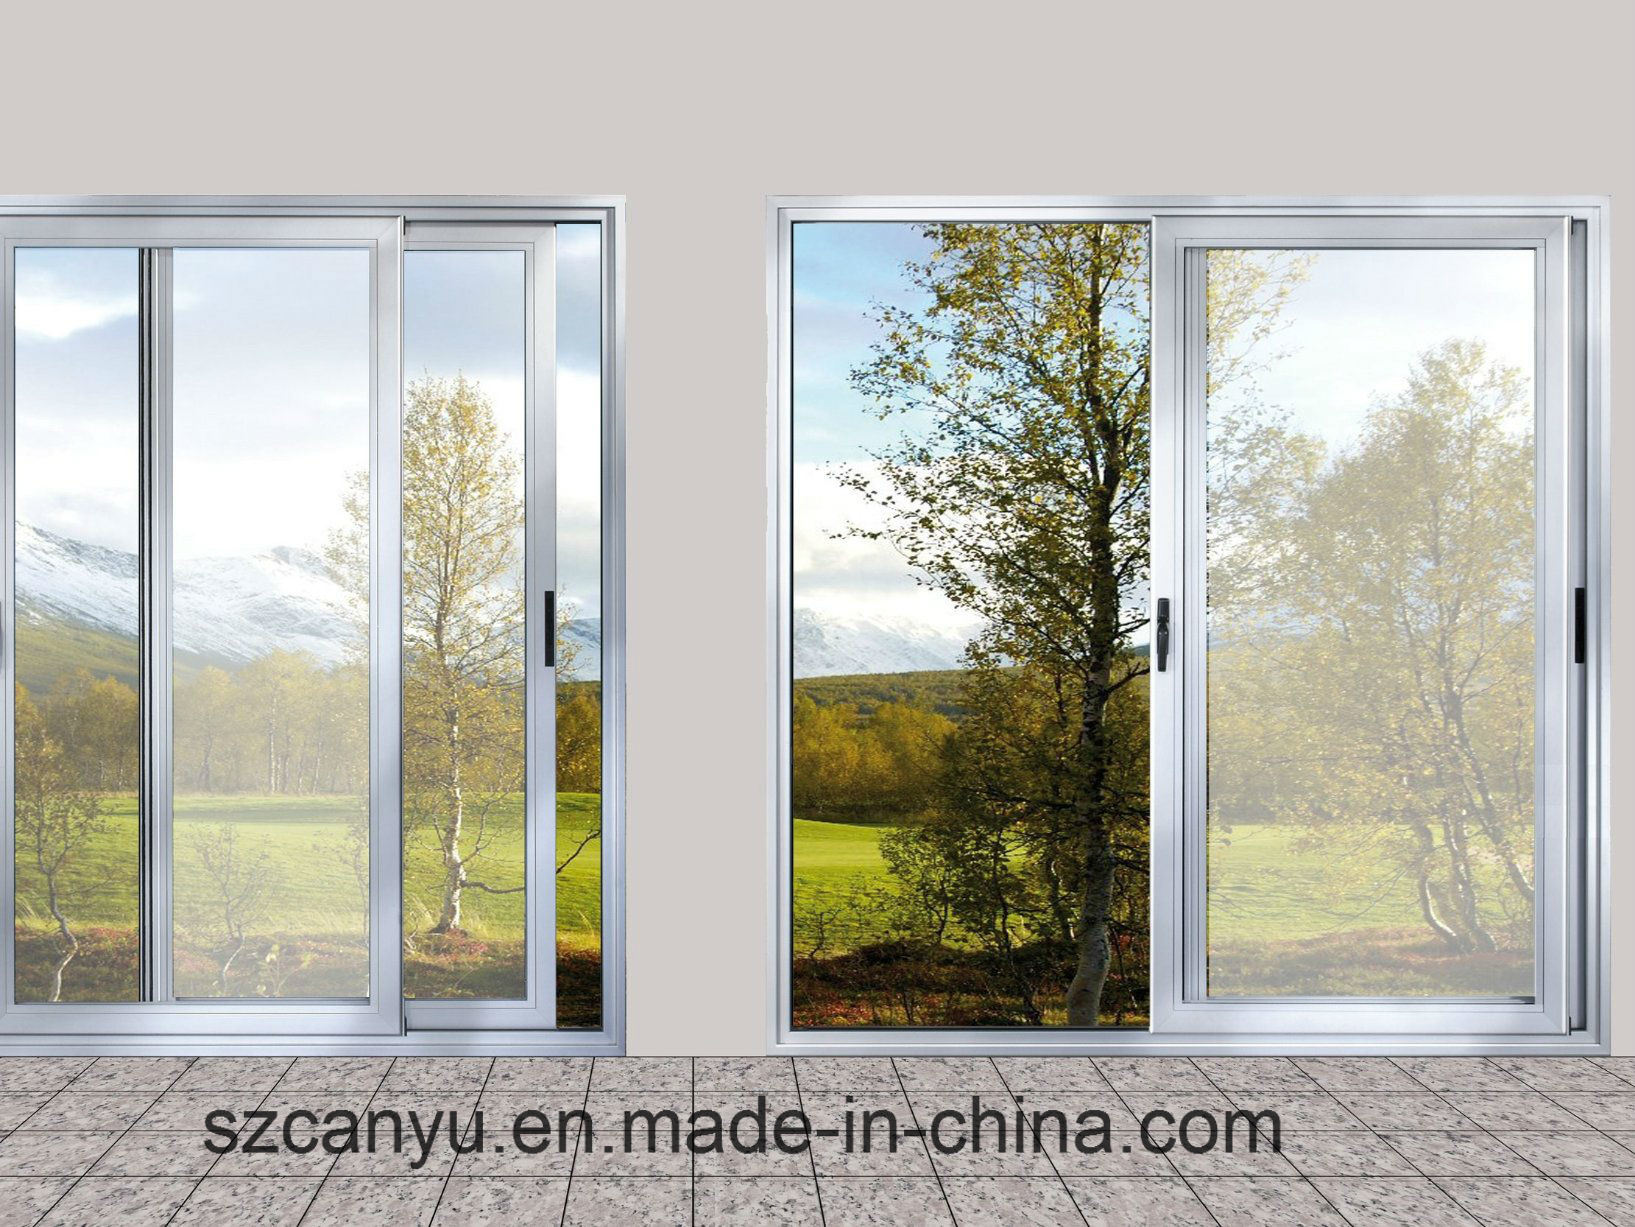 Hot Sale New Design Aluminum Alloy Sliding Window